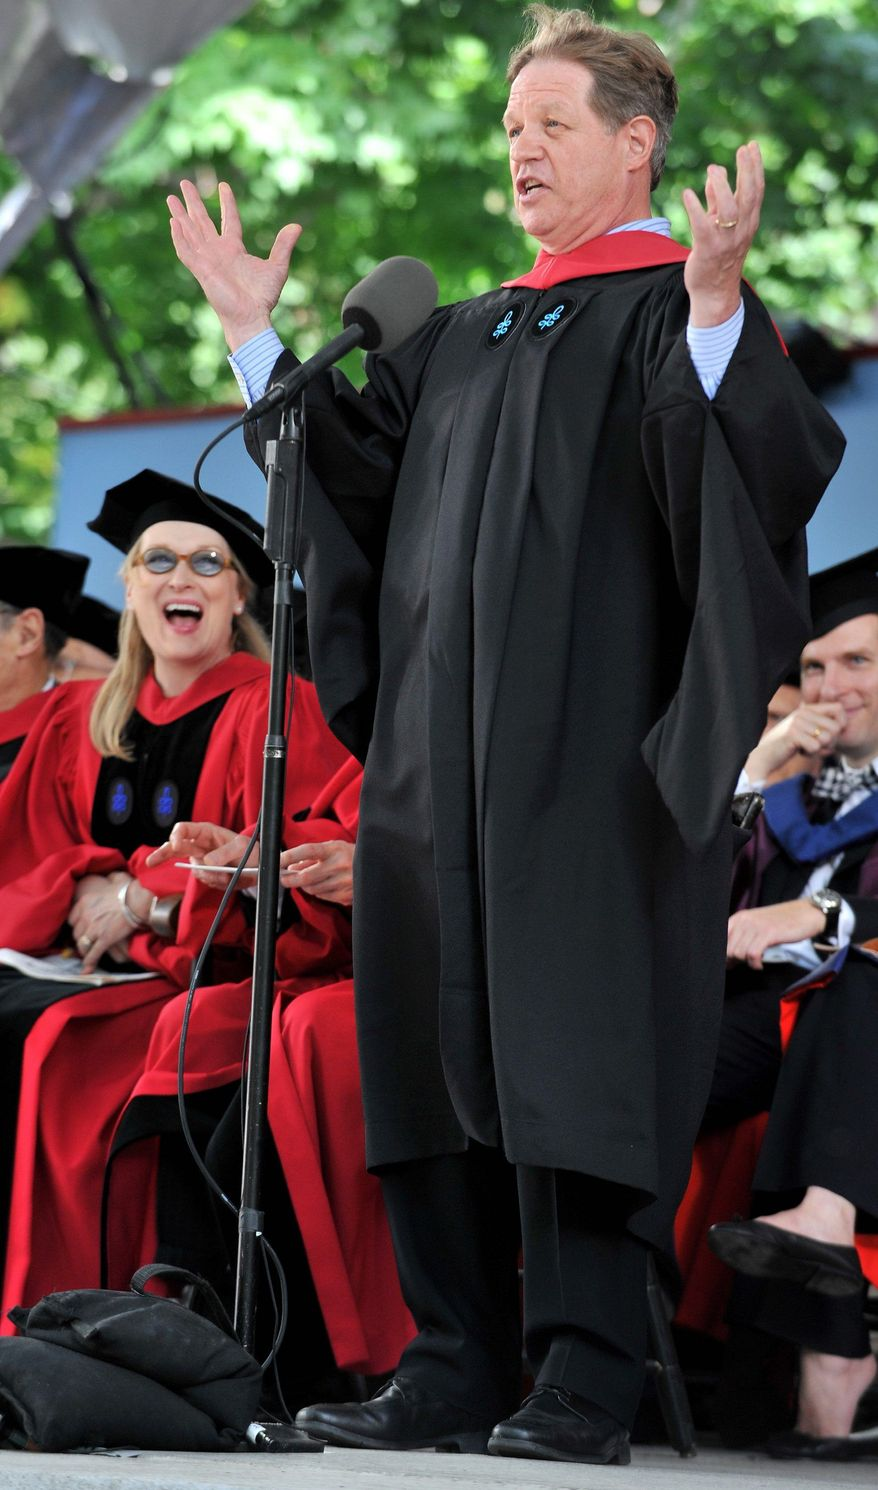 """Jimmy Tingle, making Meryl Streep laugh at Harvard's May commencement, says it's hard to satirize an """"underdog"""" president. (Associated Press)"""